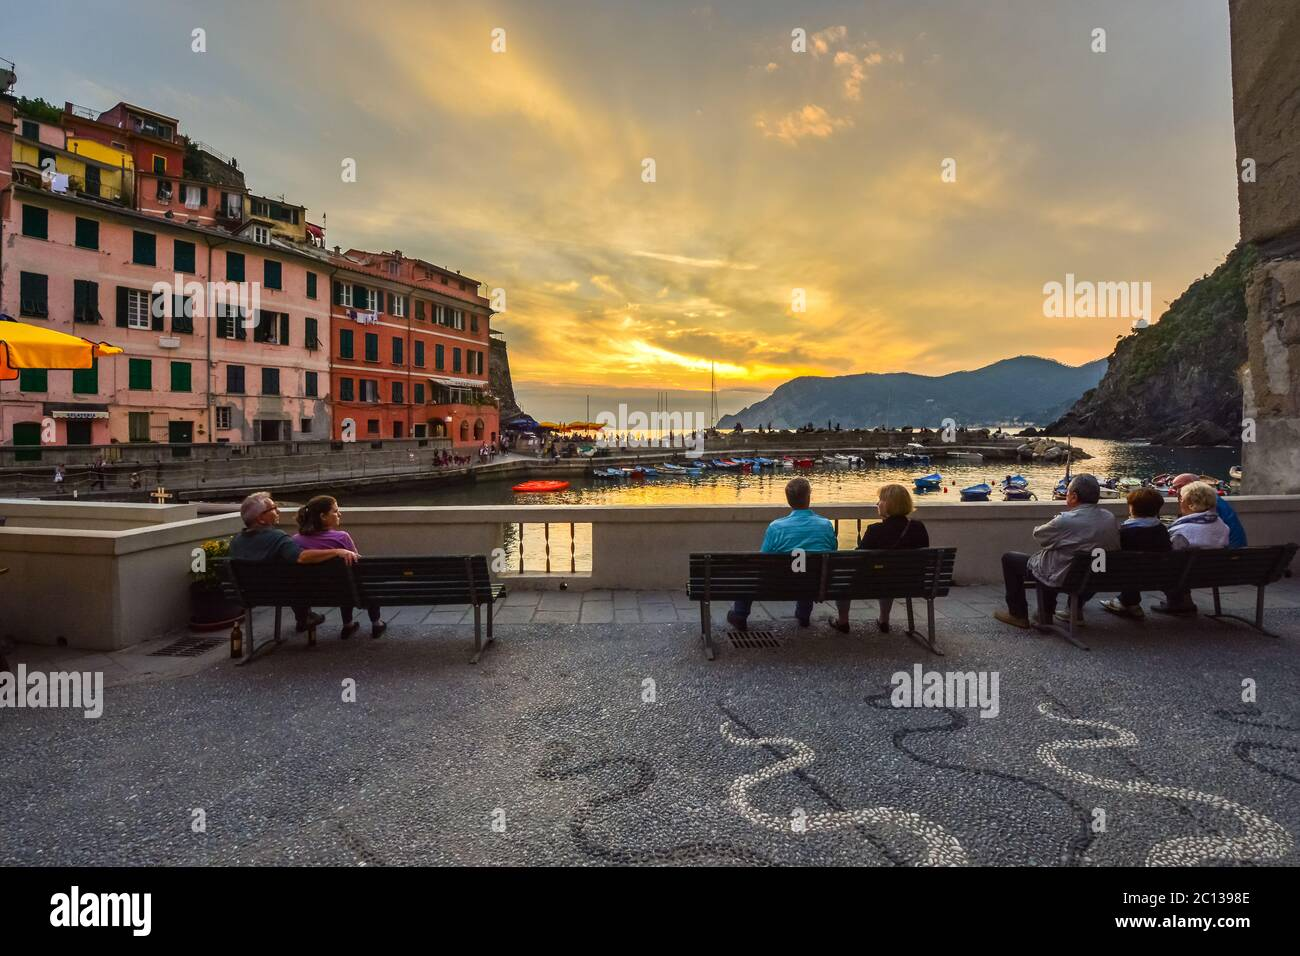 Tourists enjoy a colorful sunset over the Ligurian sea as they sit on a terrace near the small harbor in the Cinque Terre village of Vernazza, Italy Stock Photo